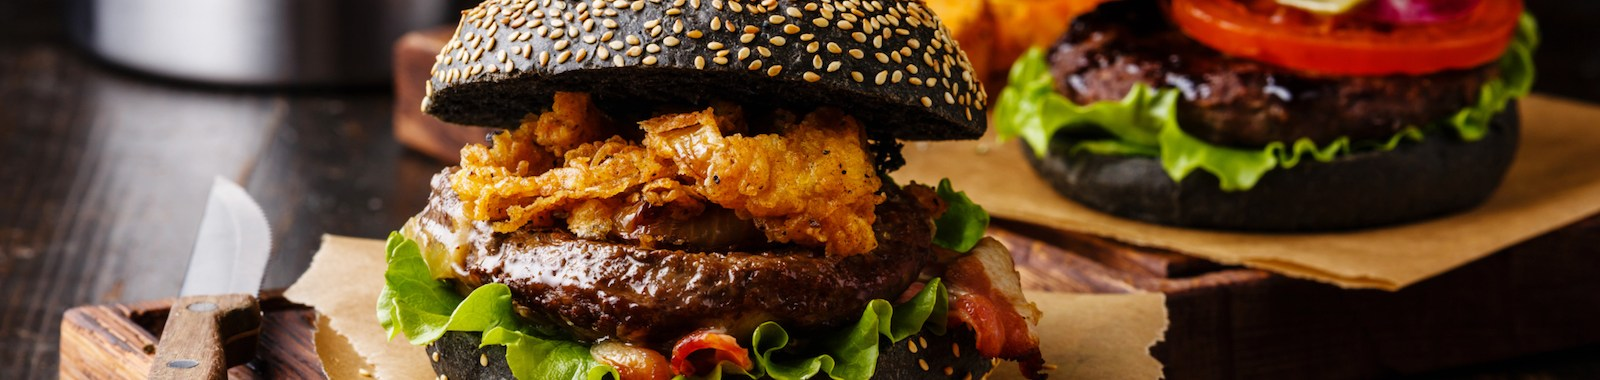 Black burger with meat, onion rings and potato wedges